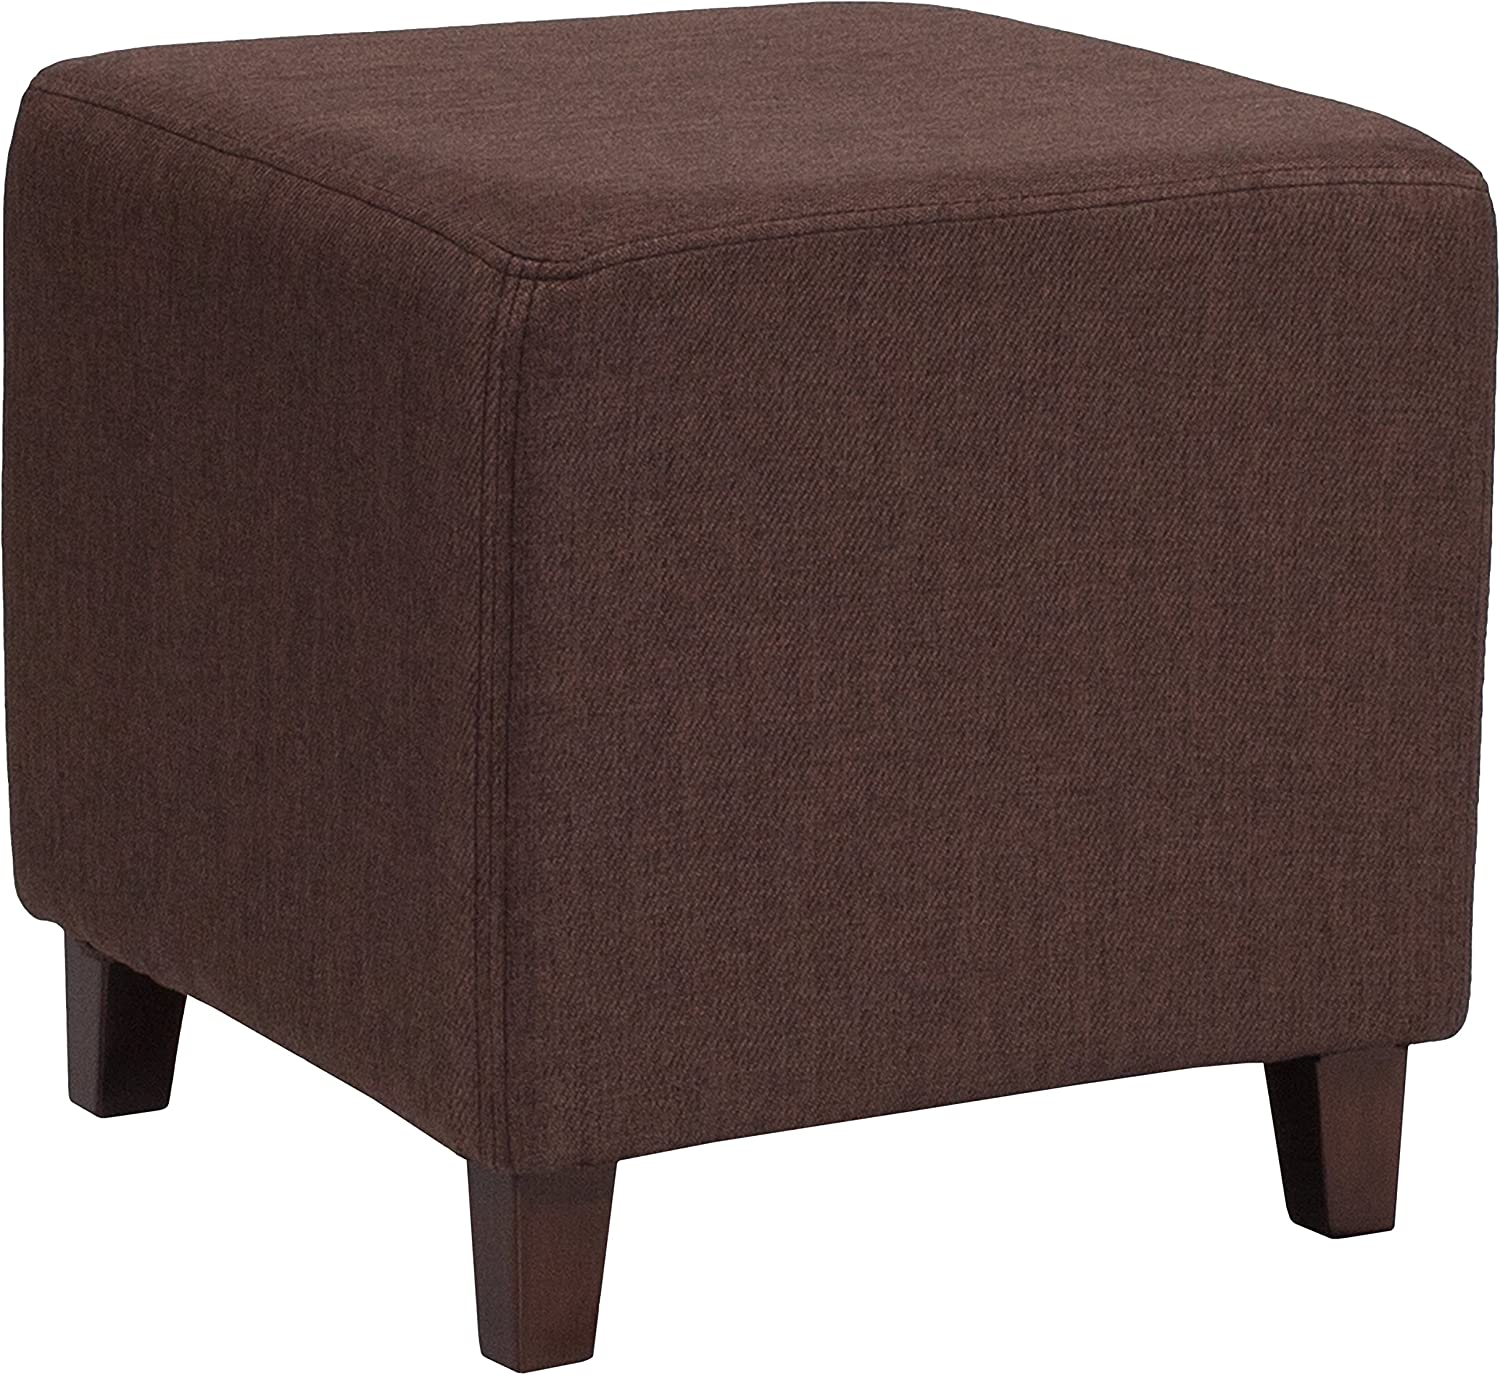 Flash Furniture Ascalon Upholstered Ottoman Pouf in Brown Fabric